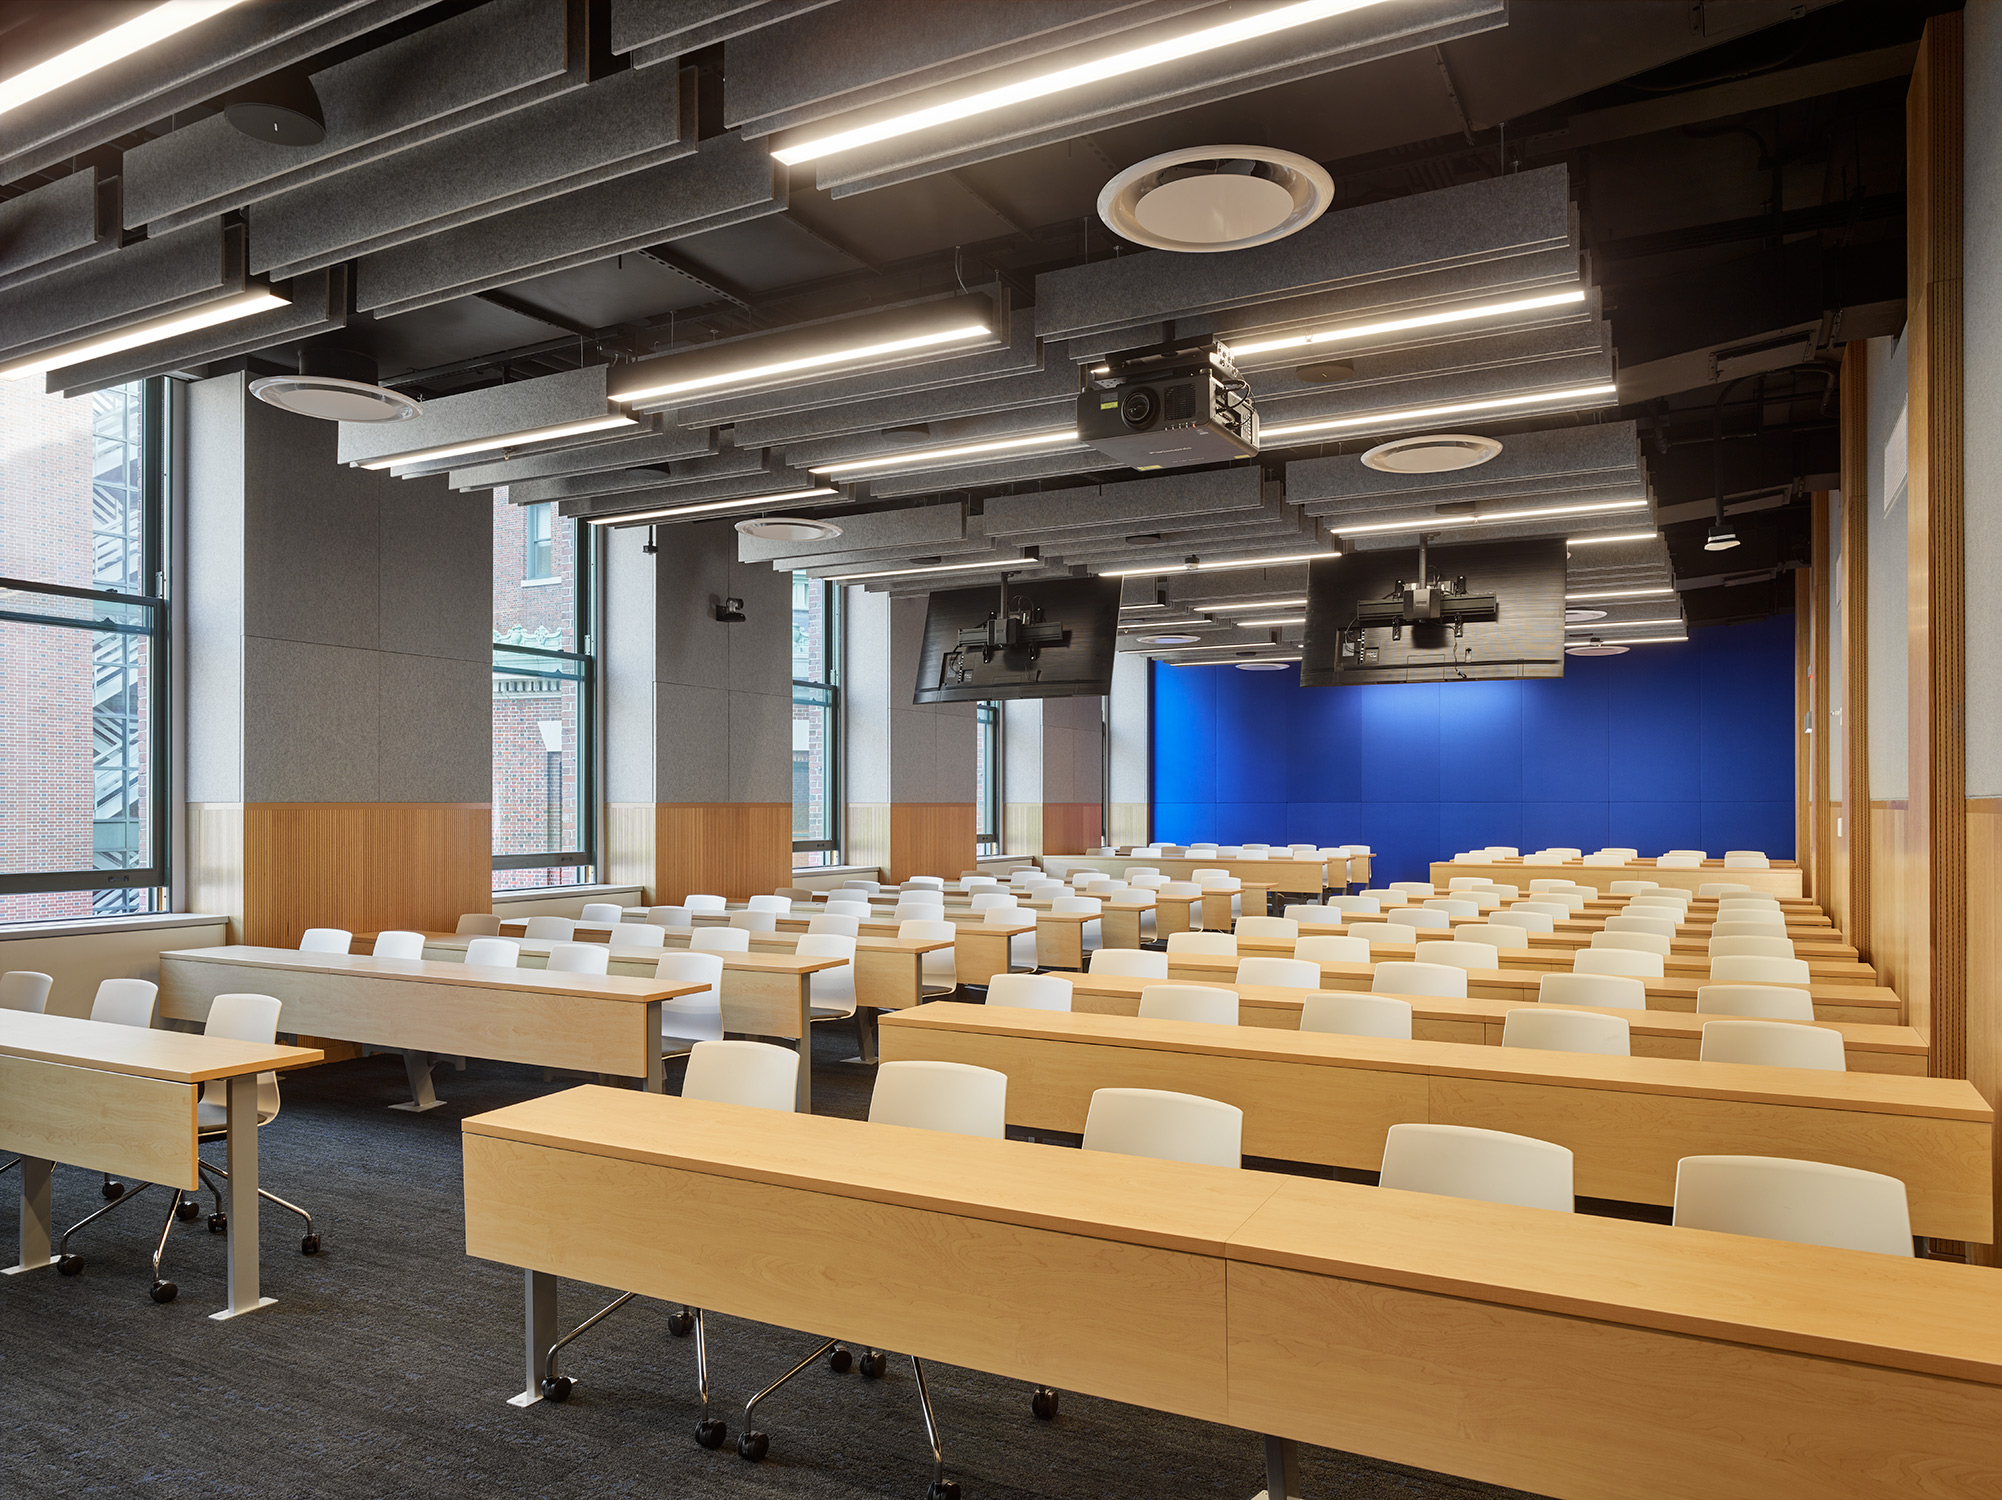 web-Lecture-Hall-Render-a.jpg